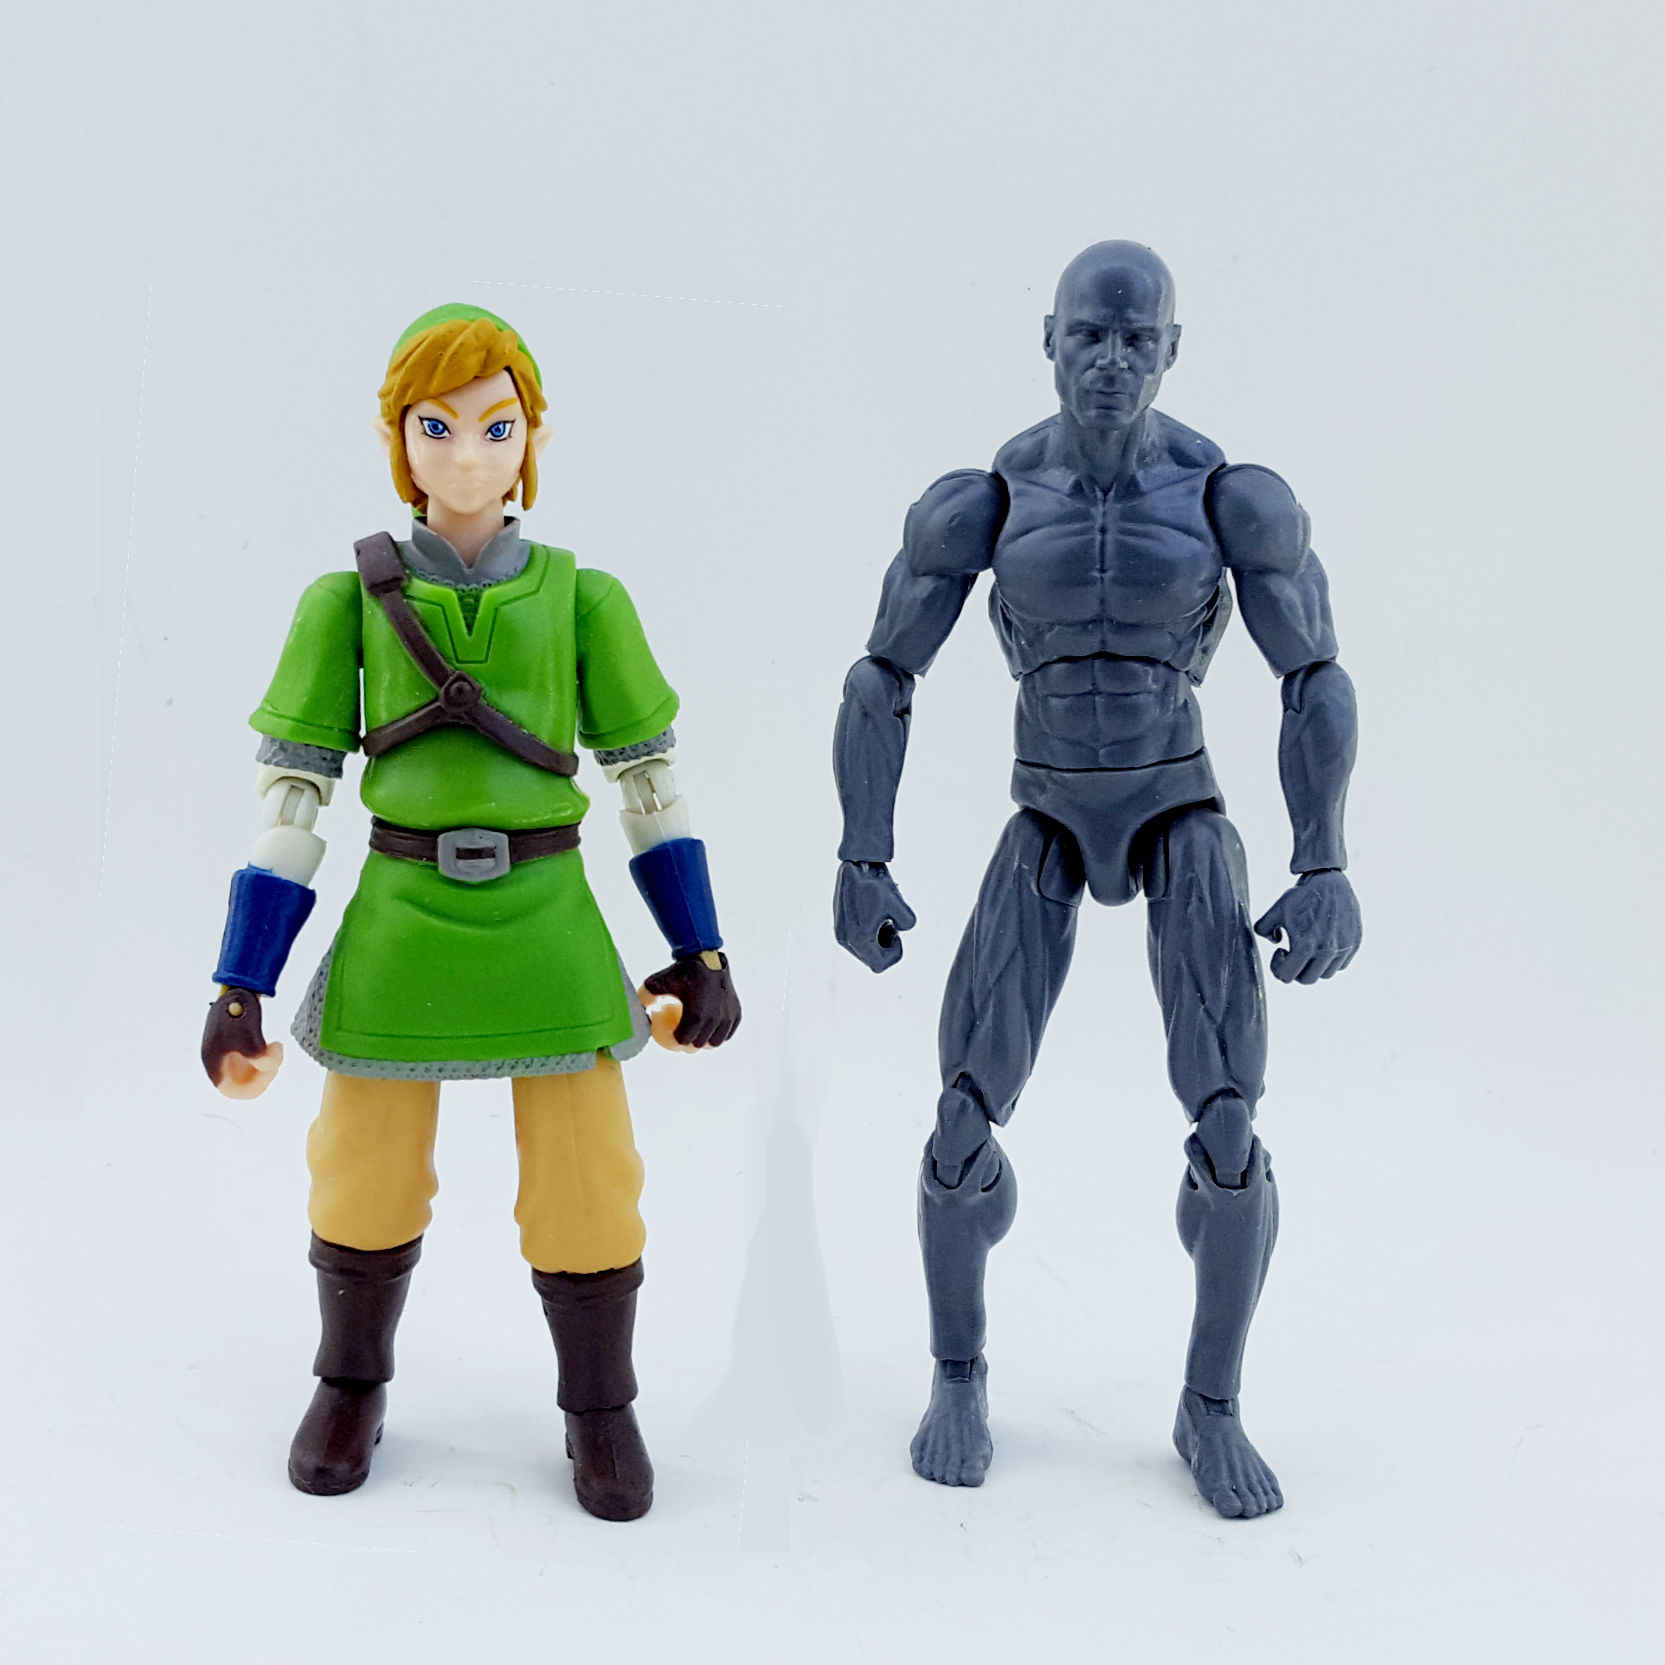 1:18 World of Nintendo Legend of Zelda Action Figure Checklist